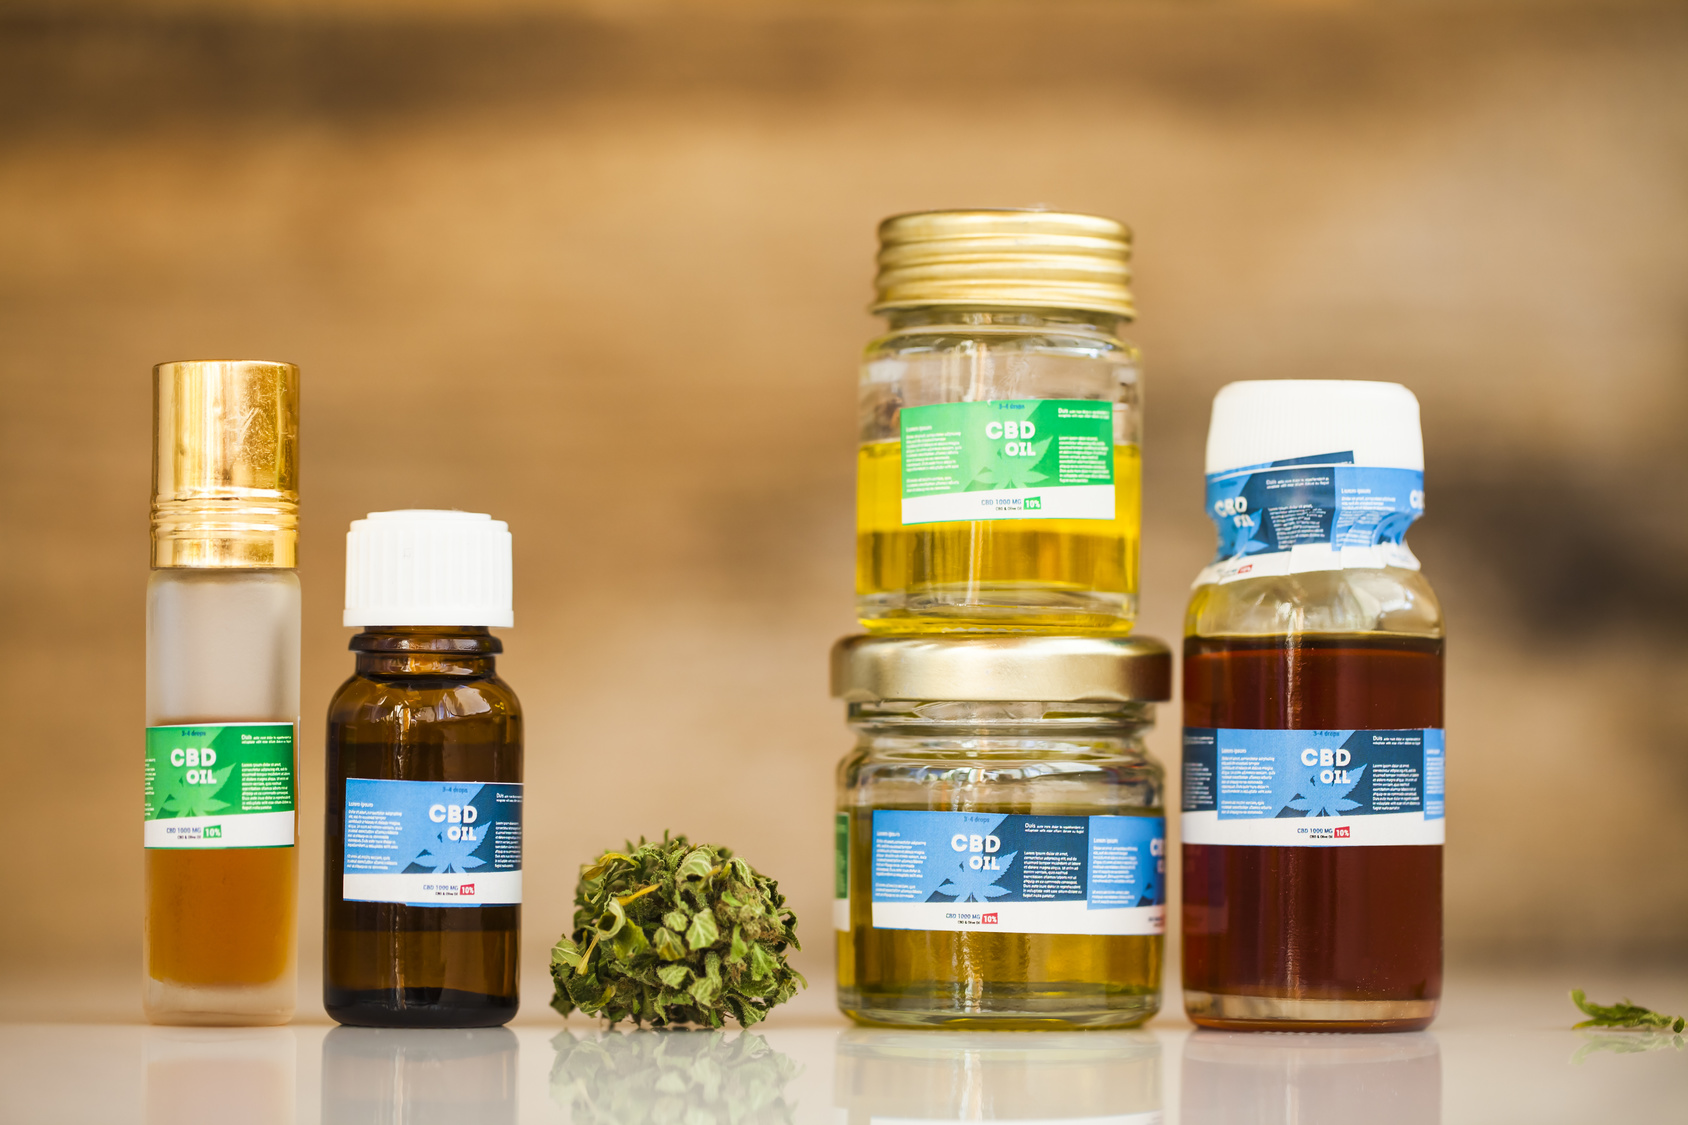 best cbd oil drops buyer's guide